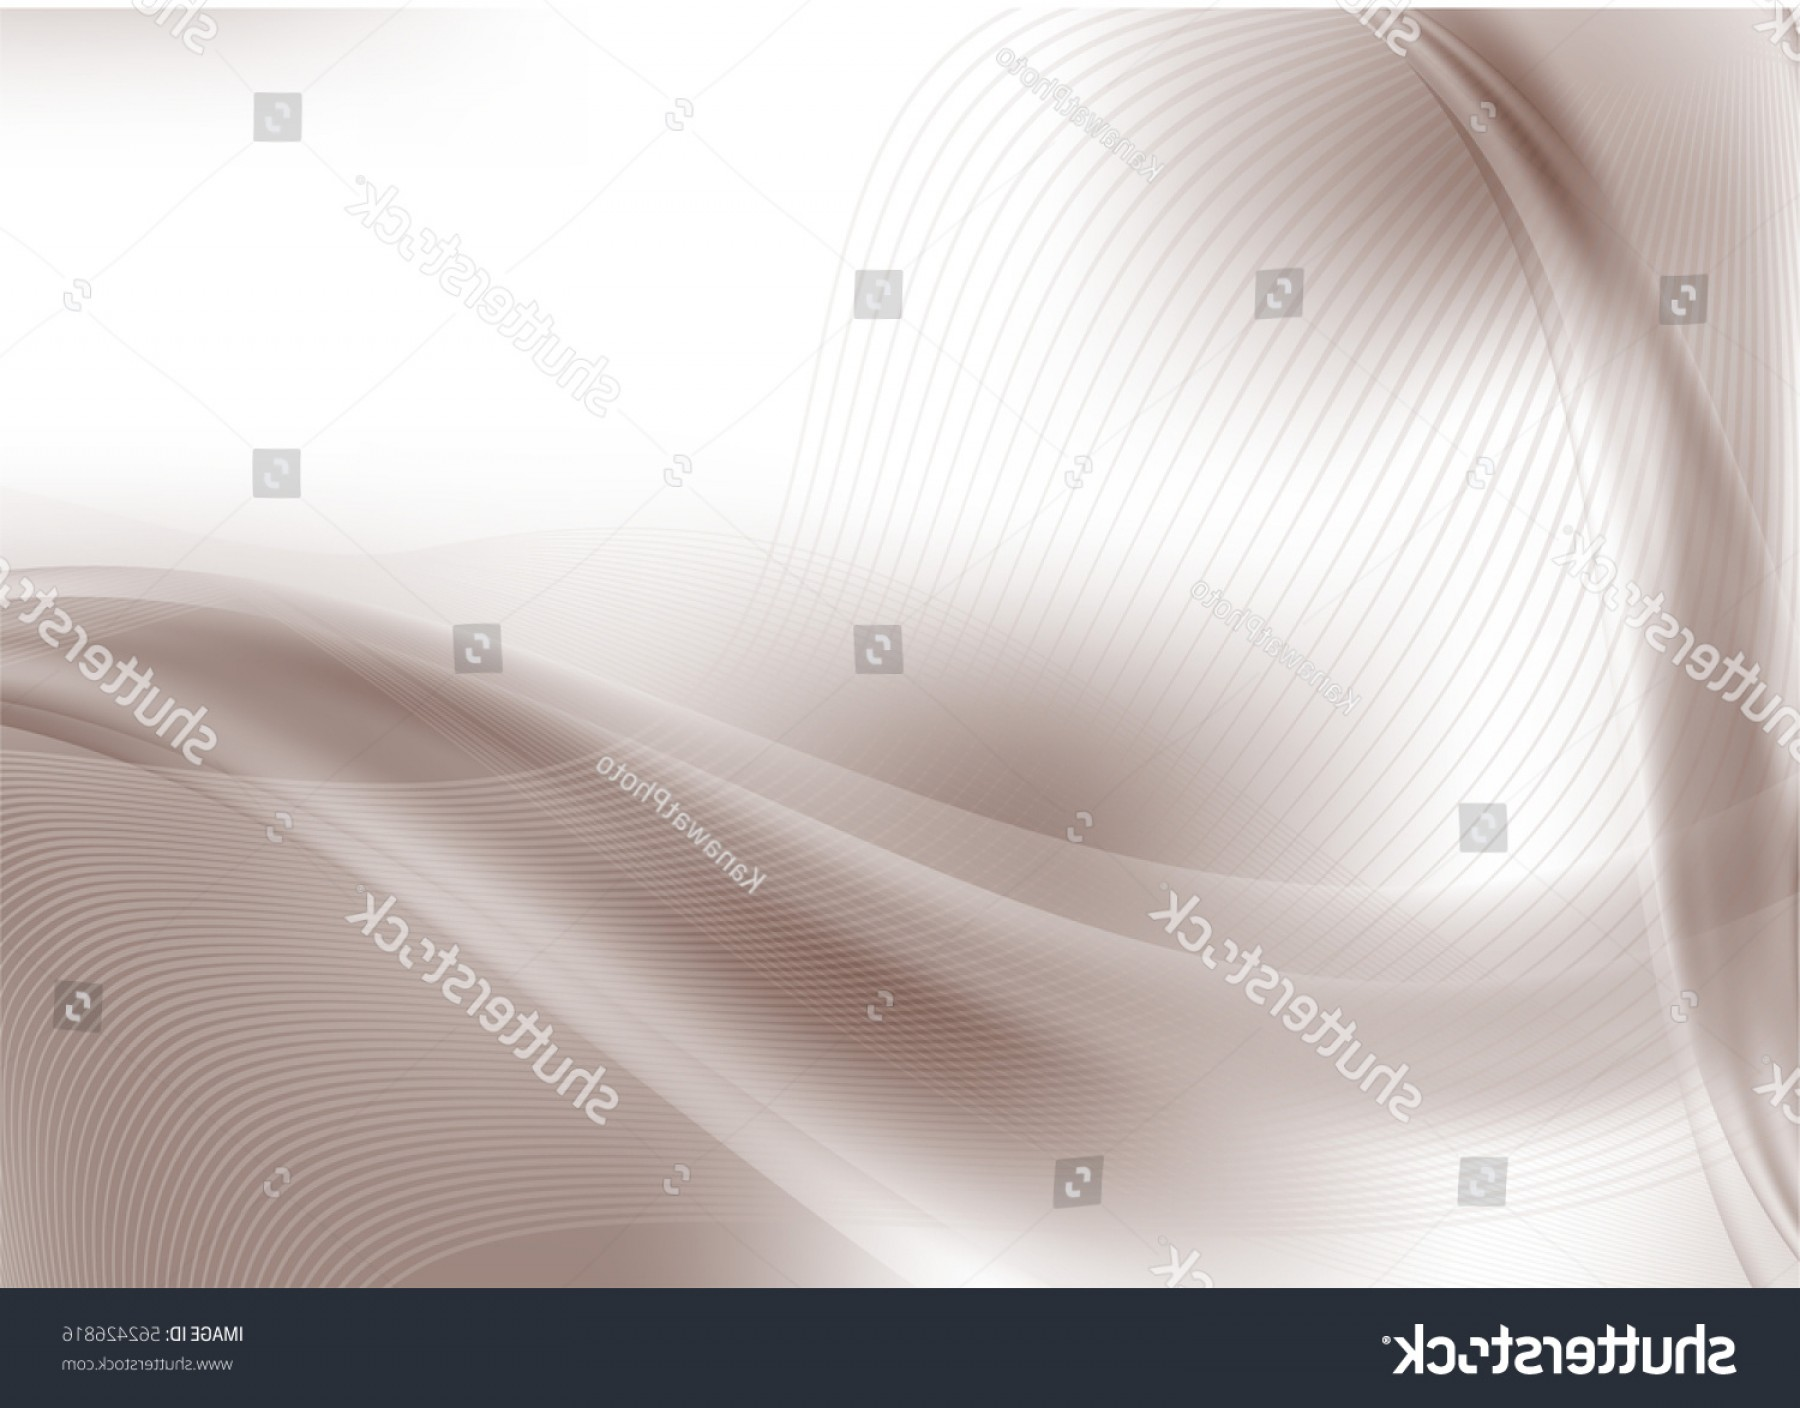 Transparent Brown Vector Background: Brown Transparent Abstract Vector Background Template